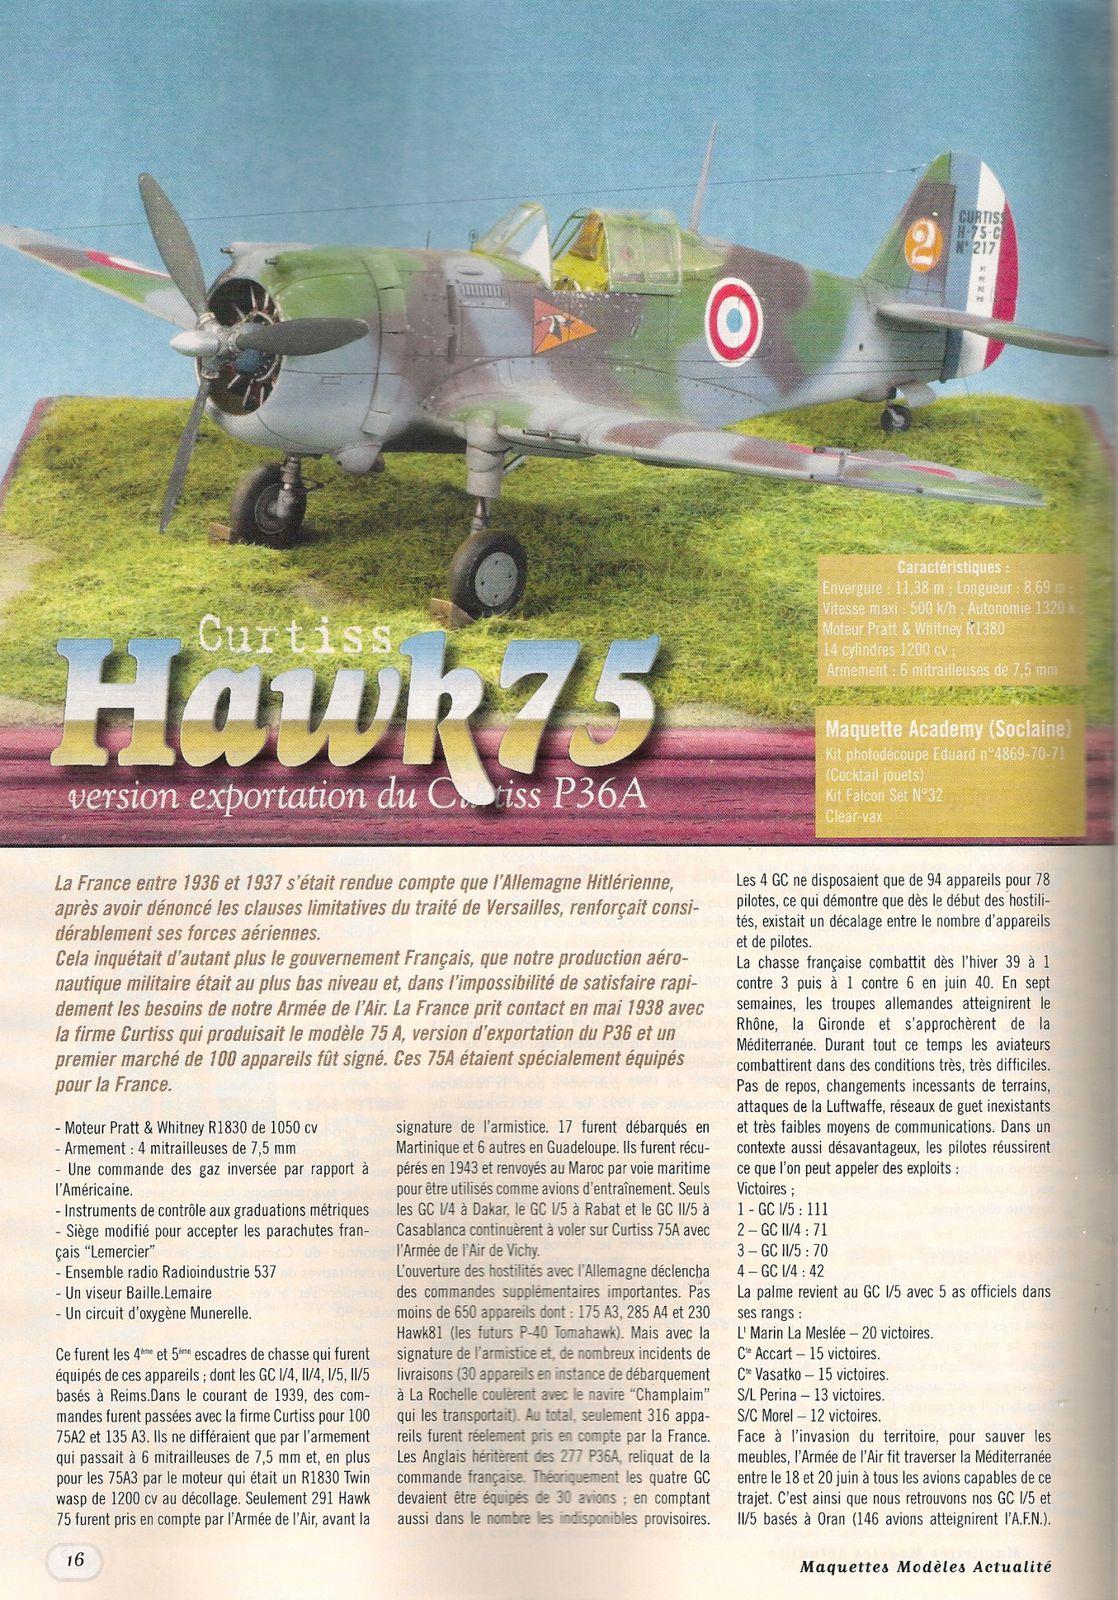 Curtiss Hawk 75